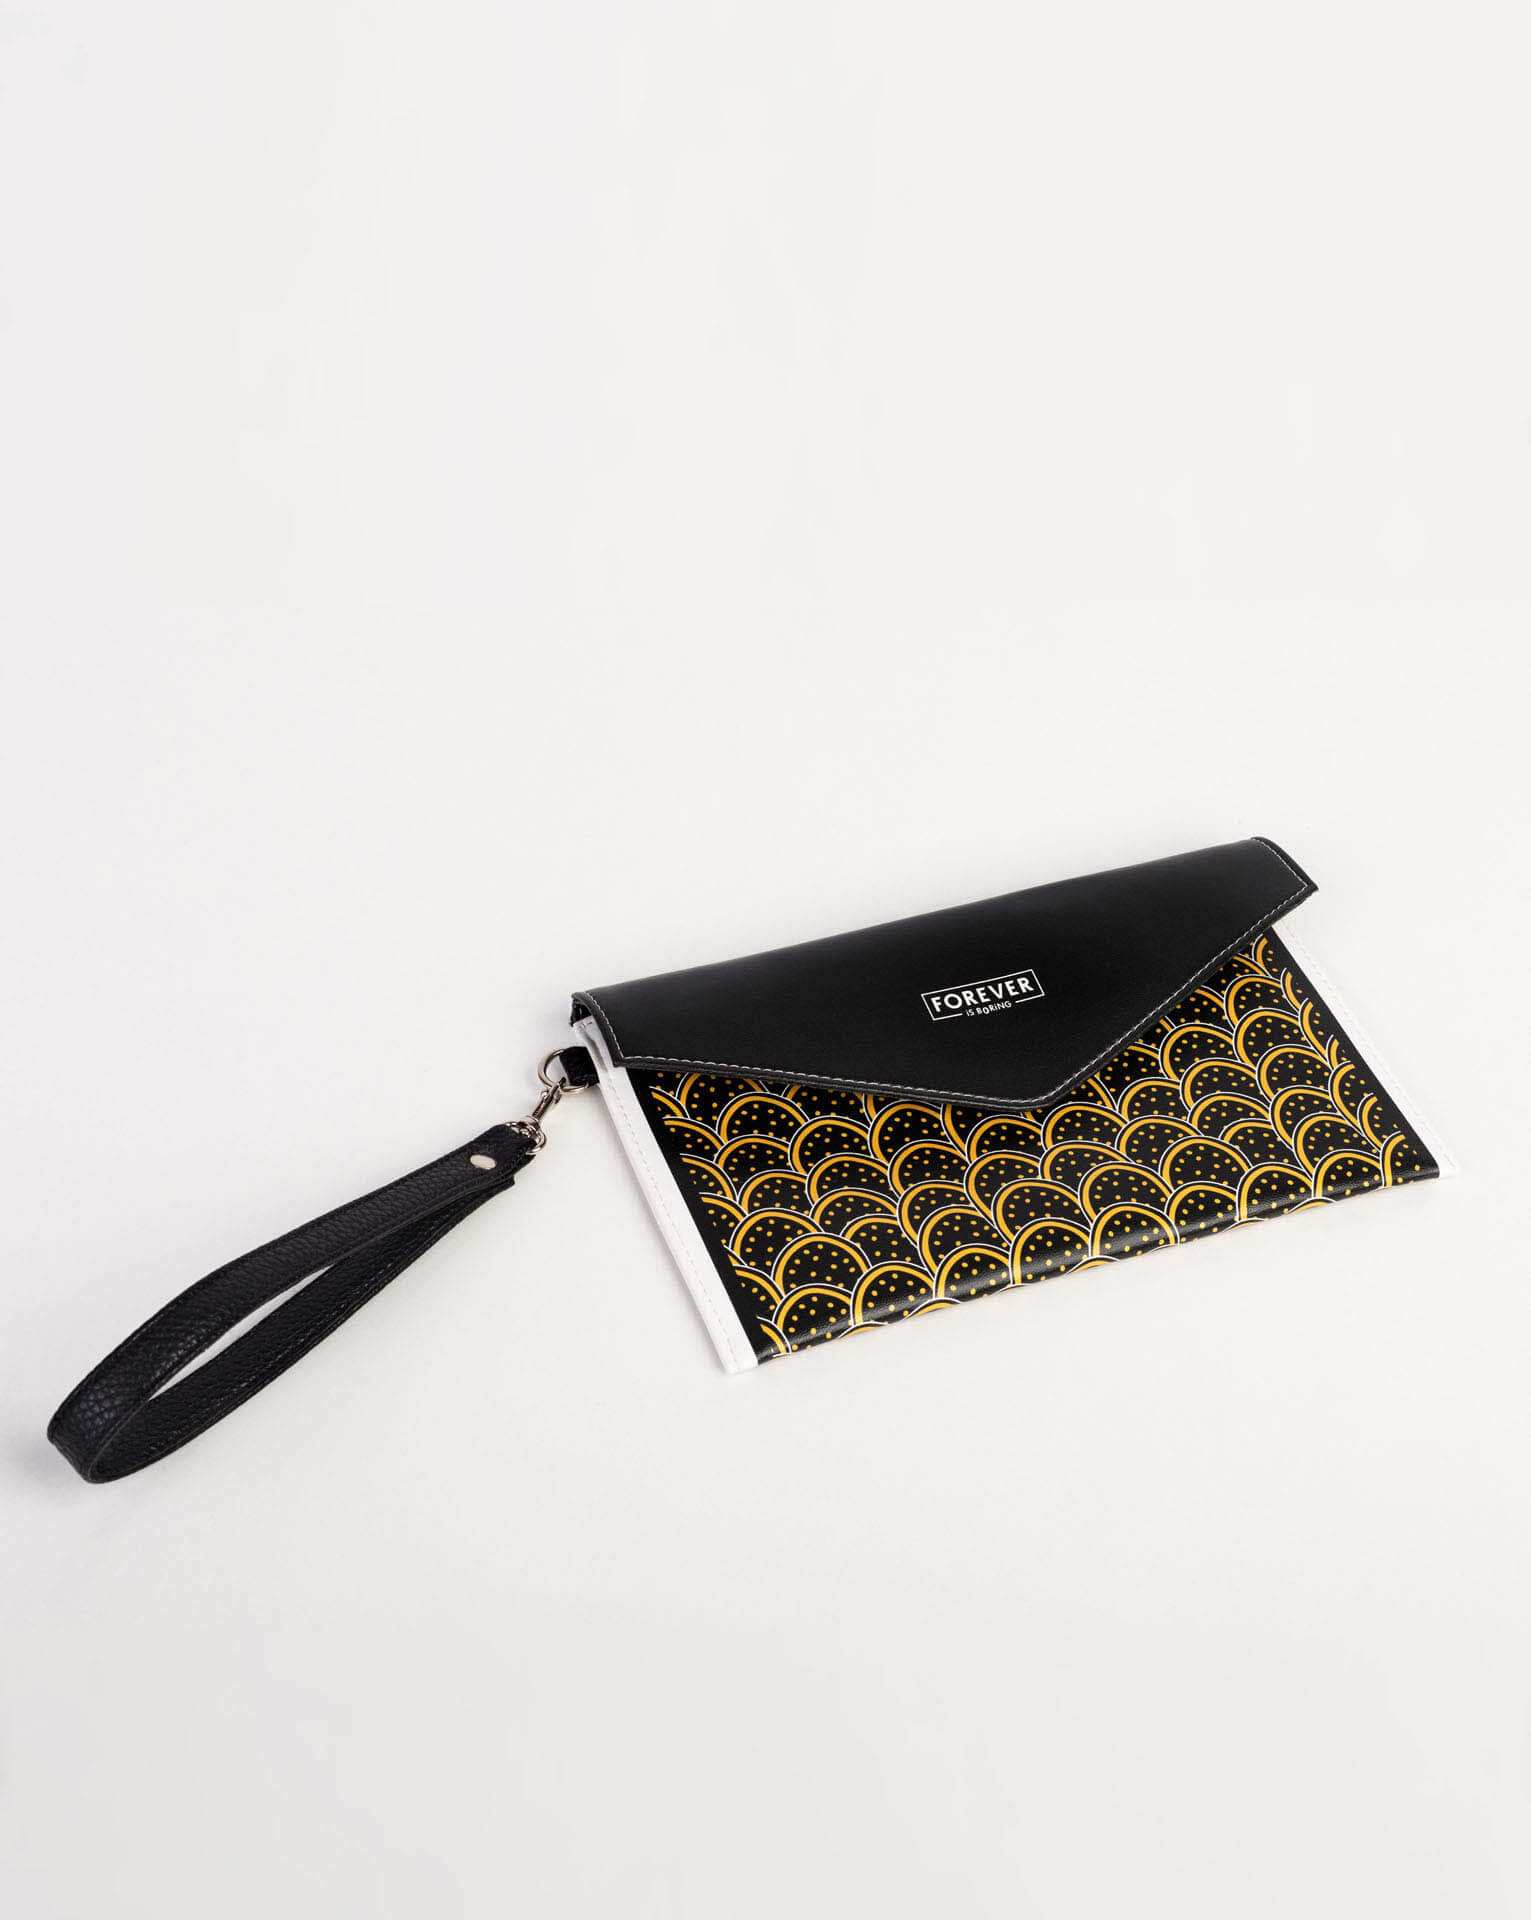 Spin Character BK Clutch - 3